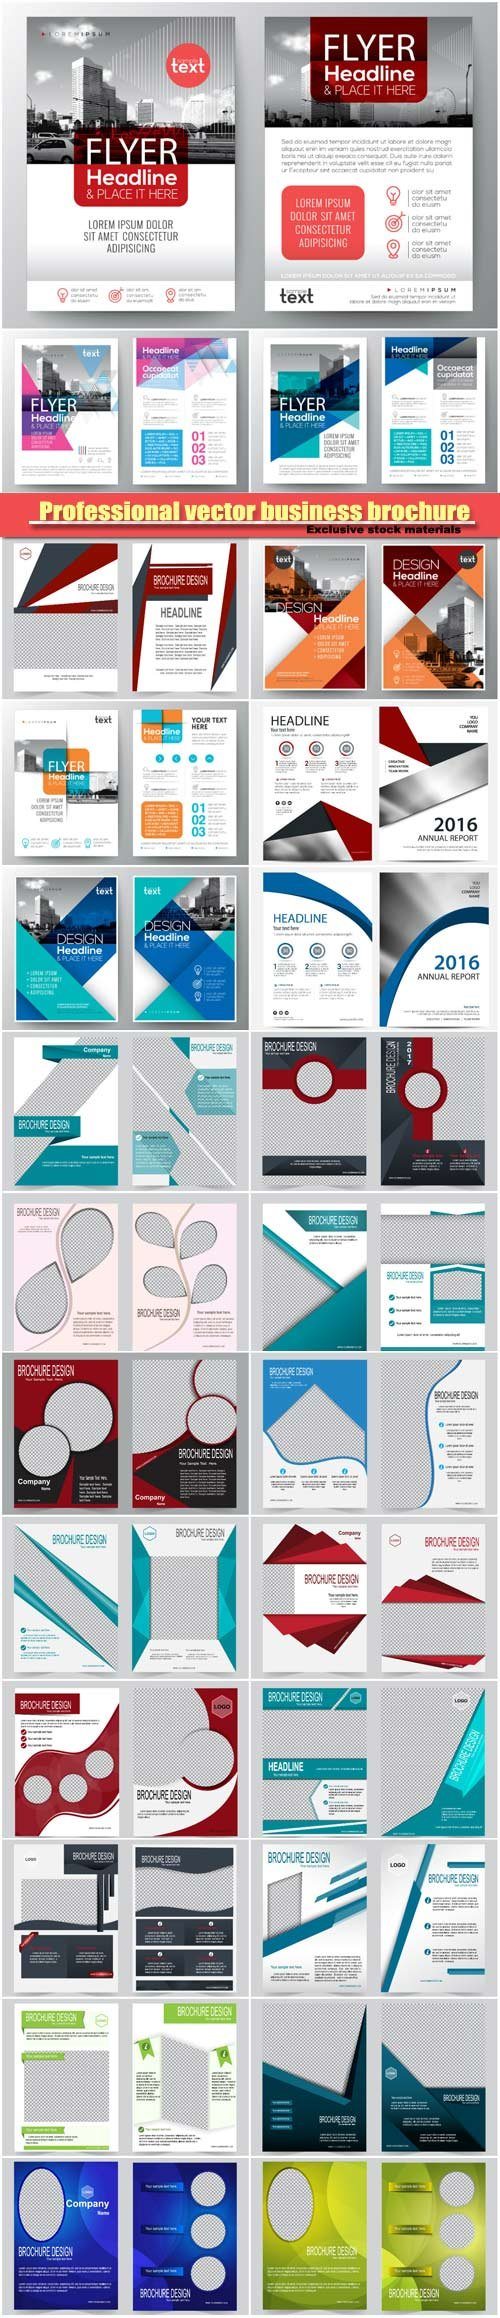 professional vector business brochure annual report cover flyer